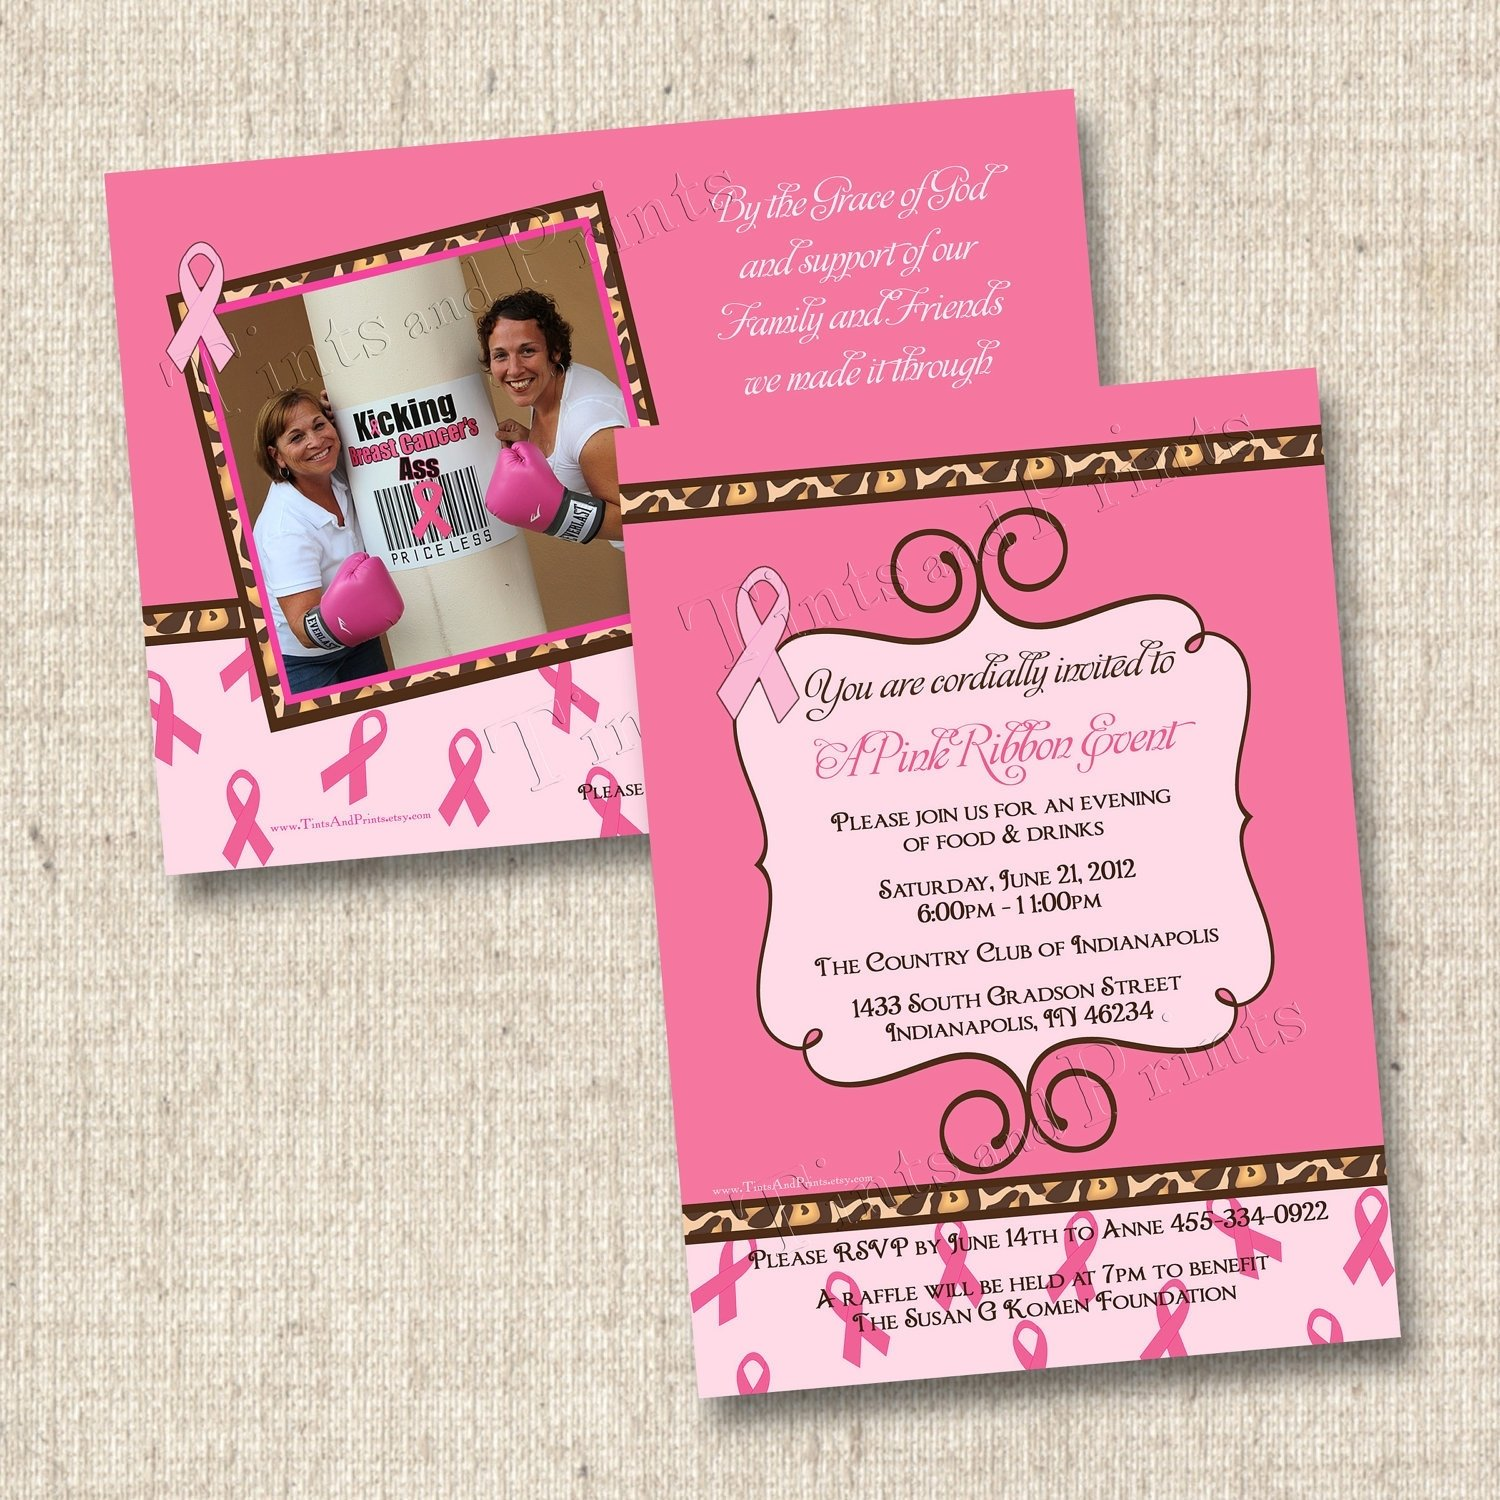 10 Stunning Breast Cancer Awareness Event Ideas sassy breast cancer benefit custom party invitation design with or 2020